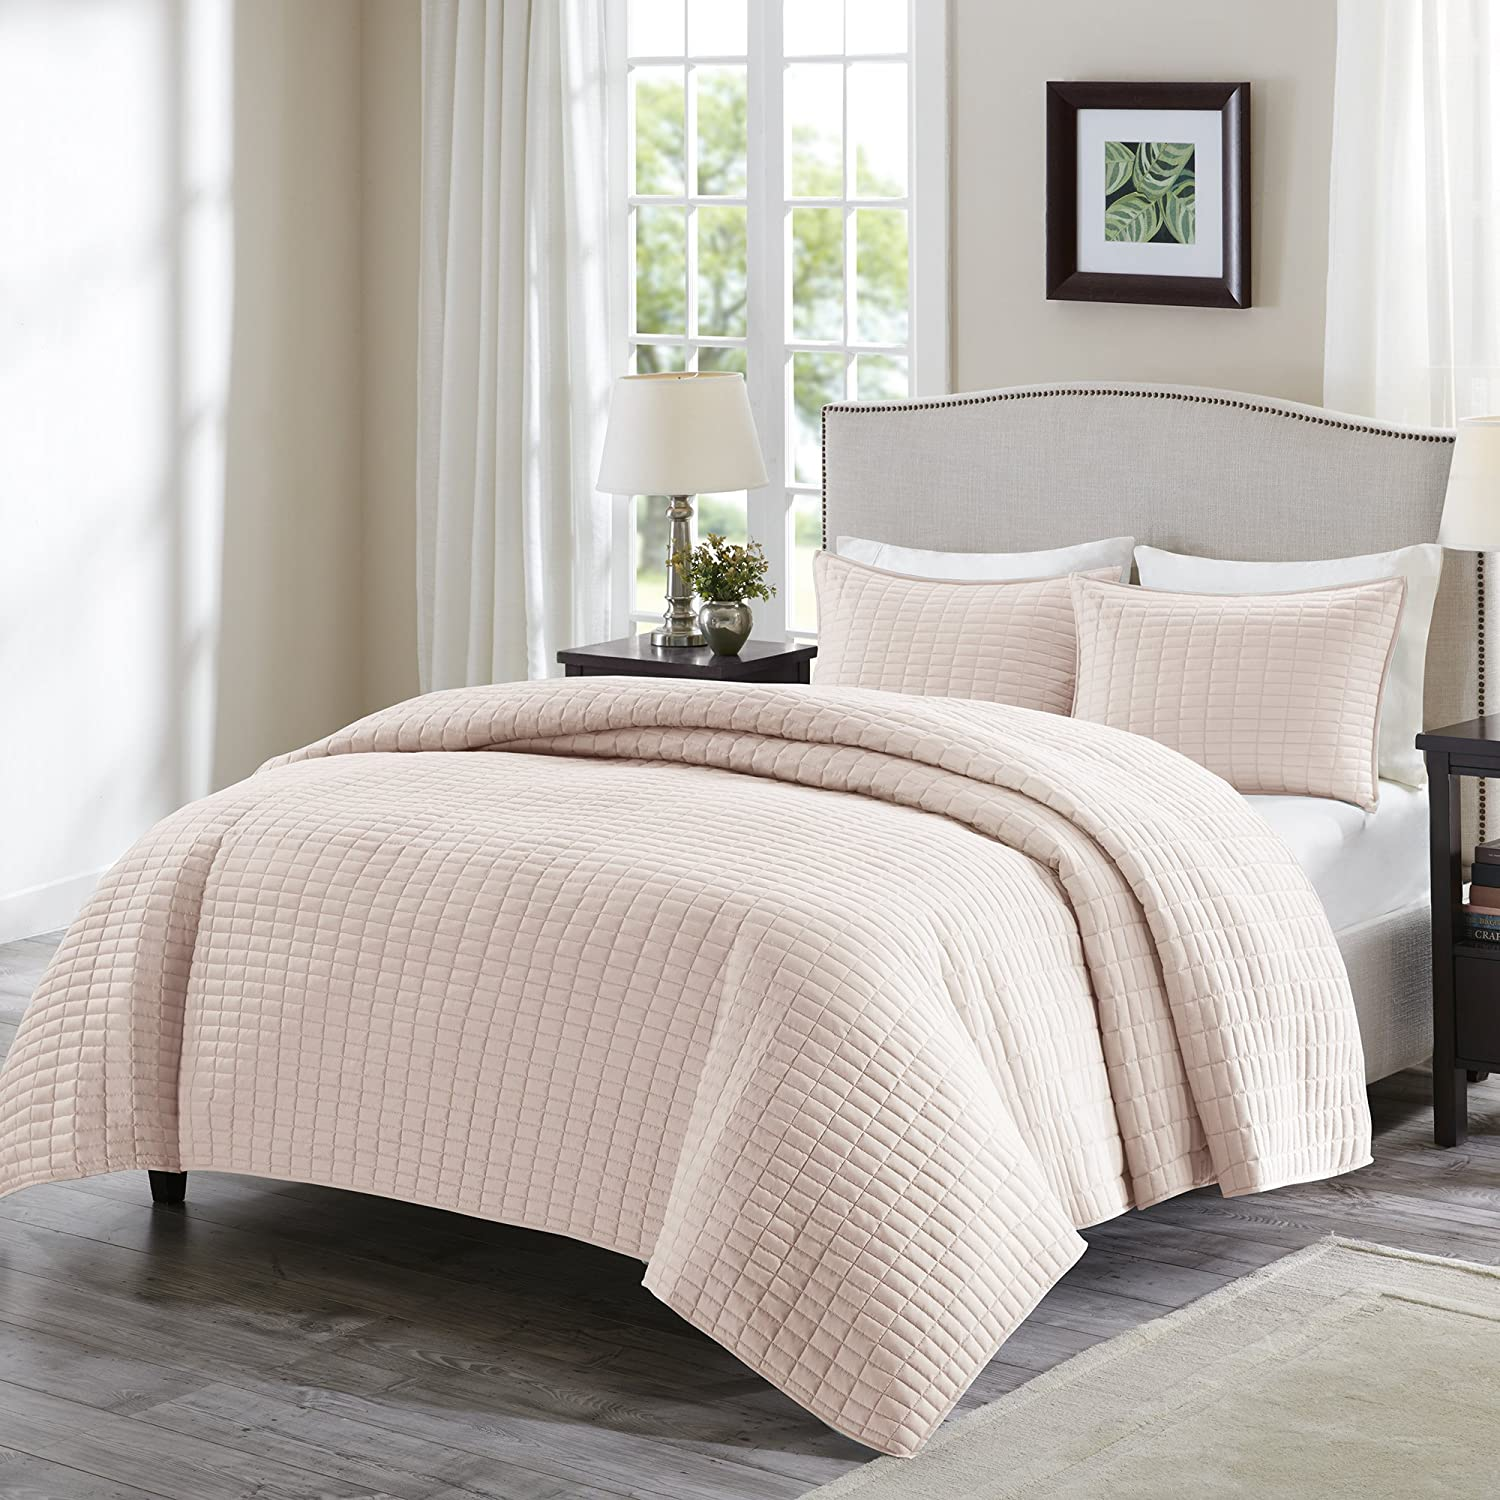 Comfort Spaces   Kienna Quilt Mini Set   2 Piece   Blush   Stitched Quilt Pattern   Twin/Twin Xl Size, Includes 1 Quilt, 1 Sham by Comfort Spaces